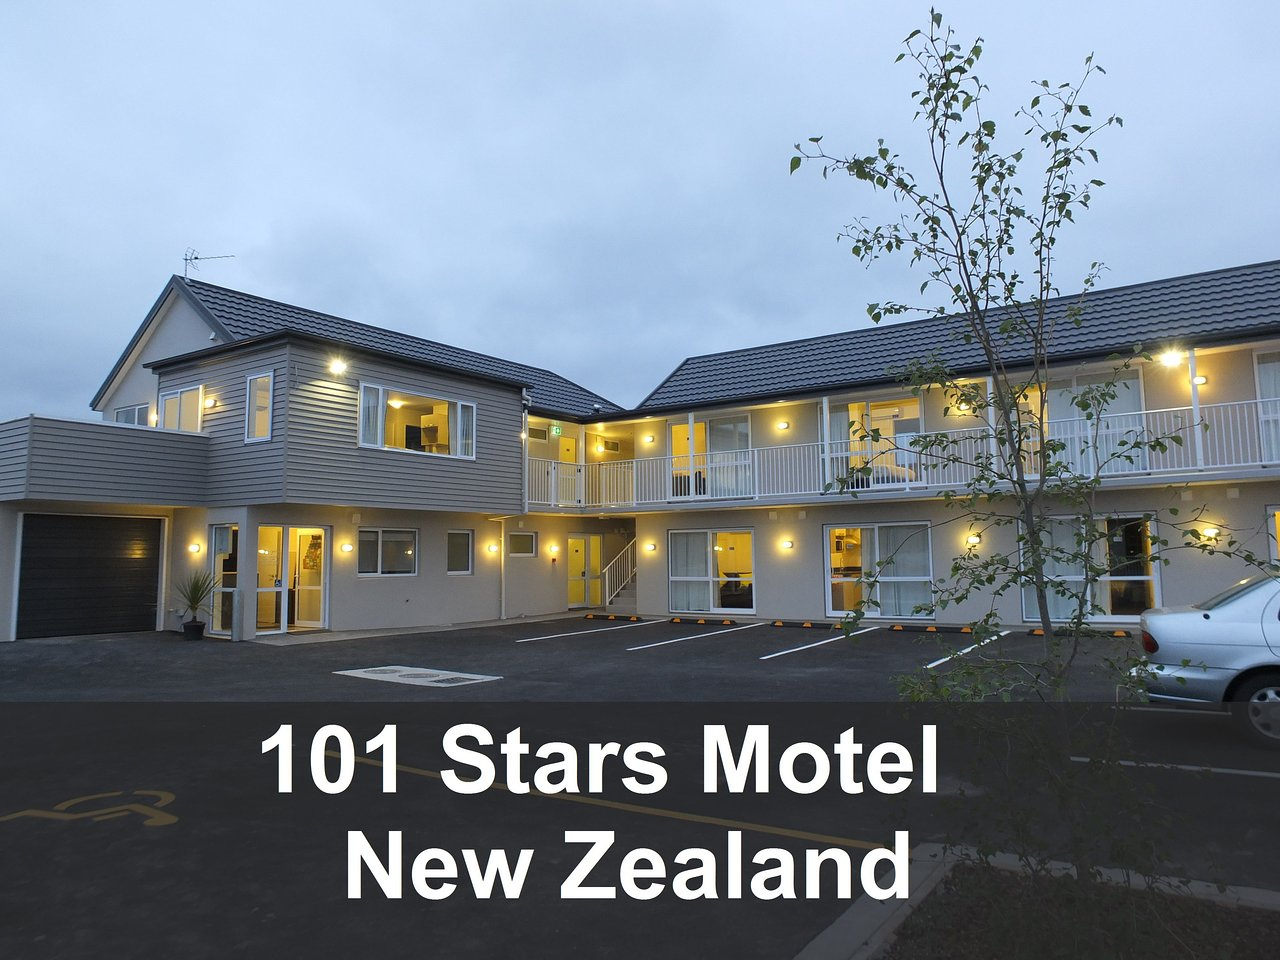 101 Stars Motel Prices Inn Reviews Christchurch New Zealand